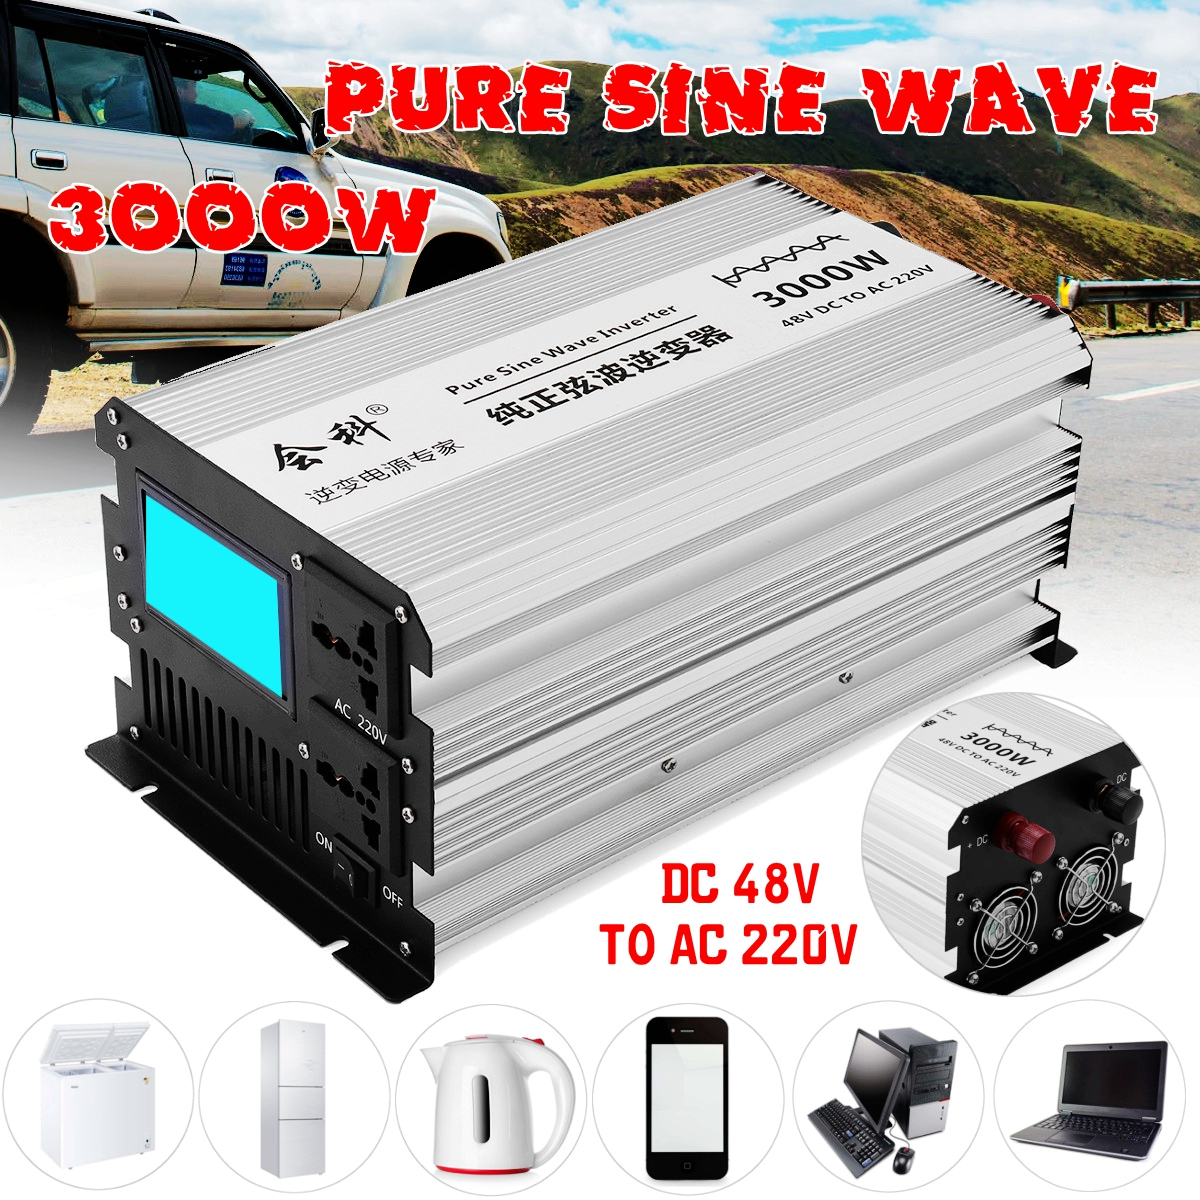 Car Vehicle Power Inverter 12v 220v 3000w Pure Sine Wave Dc To Circuit Diagram 2017 2018 Best Cars 1500w Peaks 24v 48v Ac110v